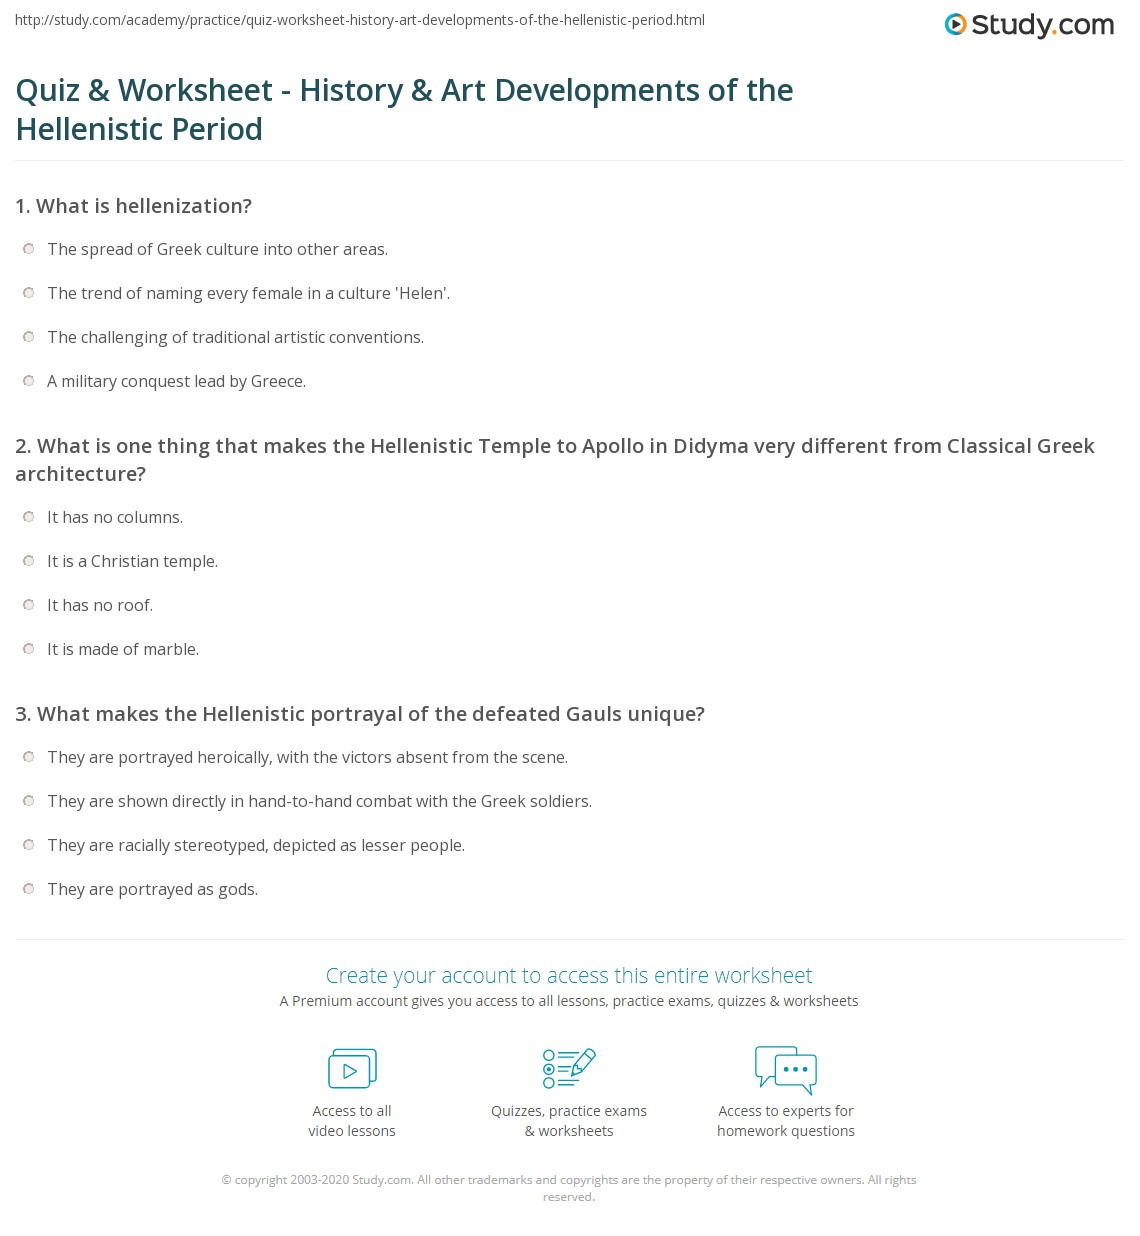 quiz worksheet history art developments of the hellenistic period. Black Bedroom Furniture Sets. Home Design Ideas